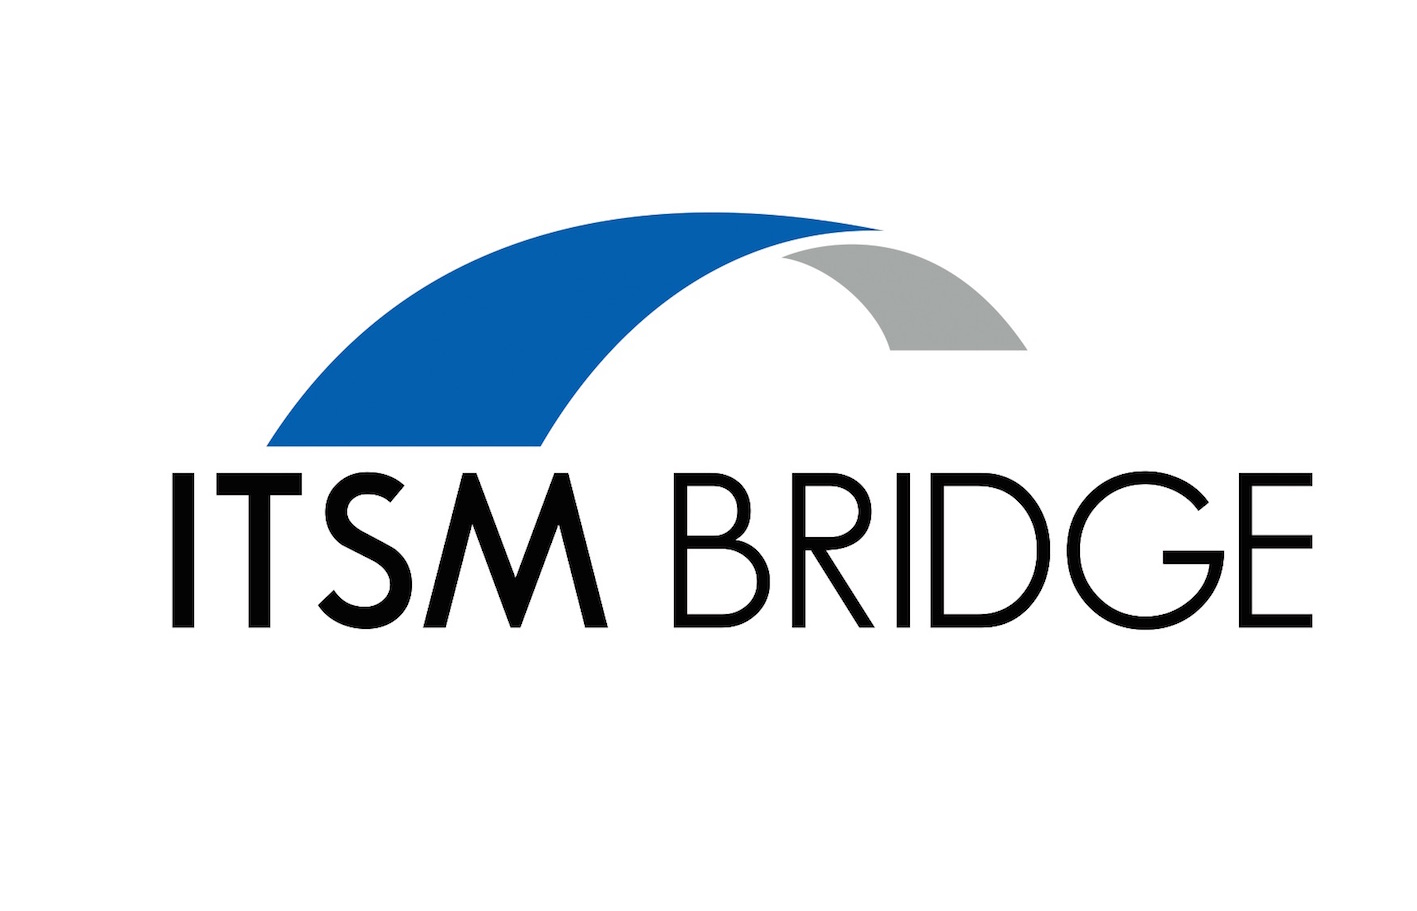 ITSM Bridge